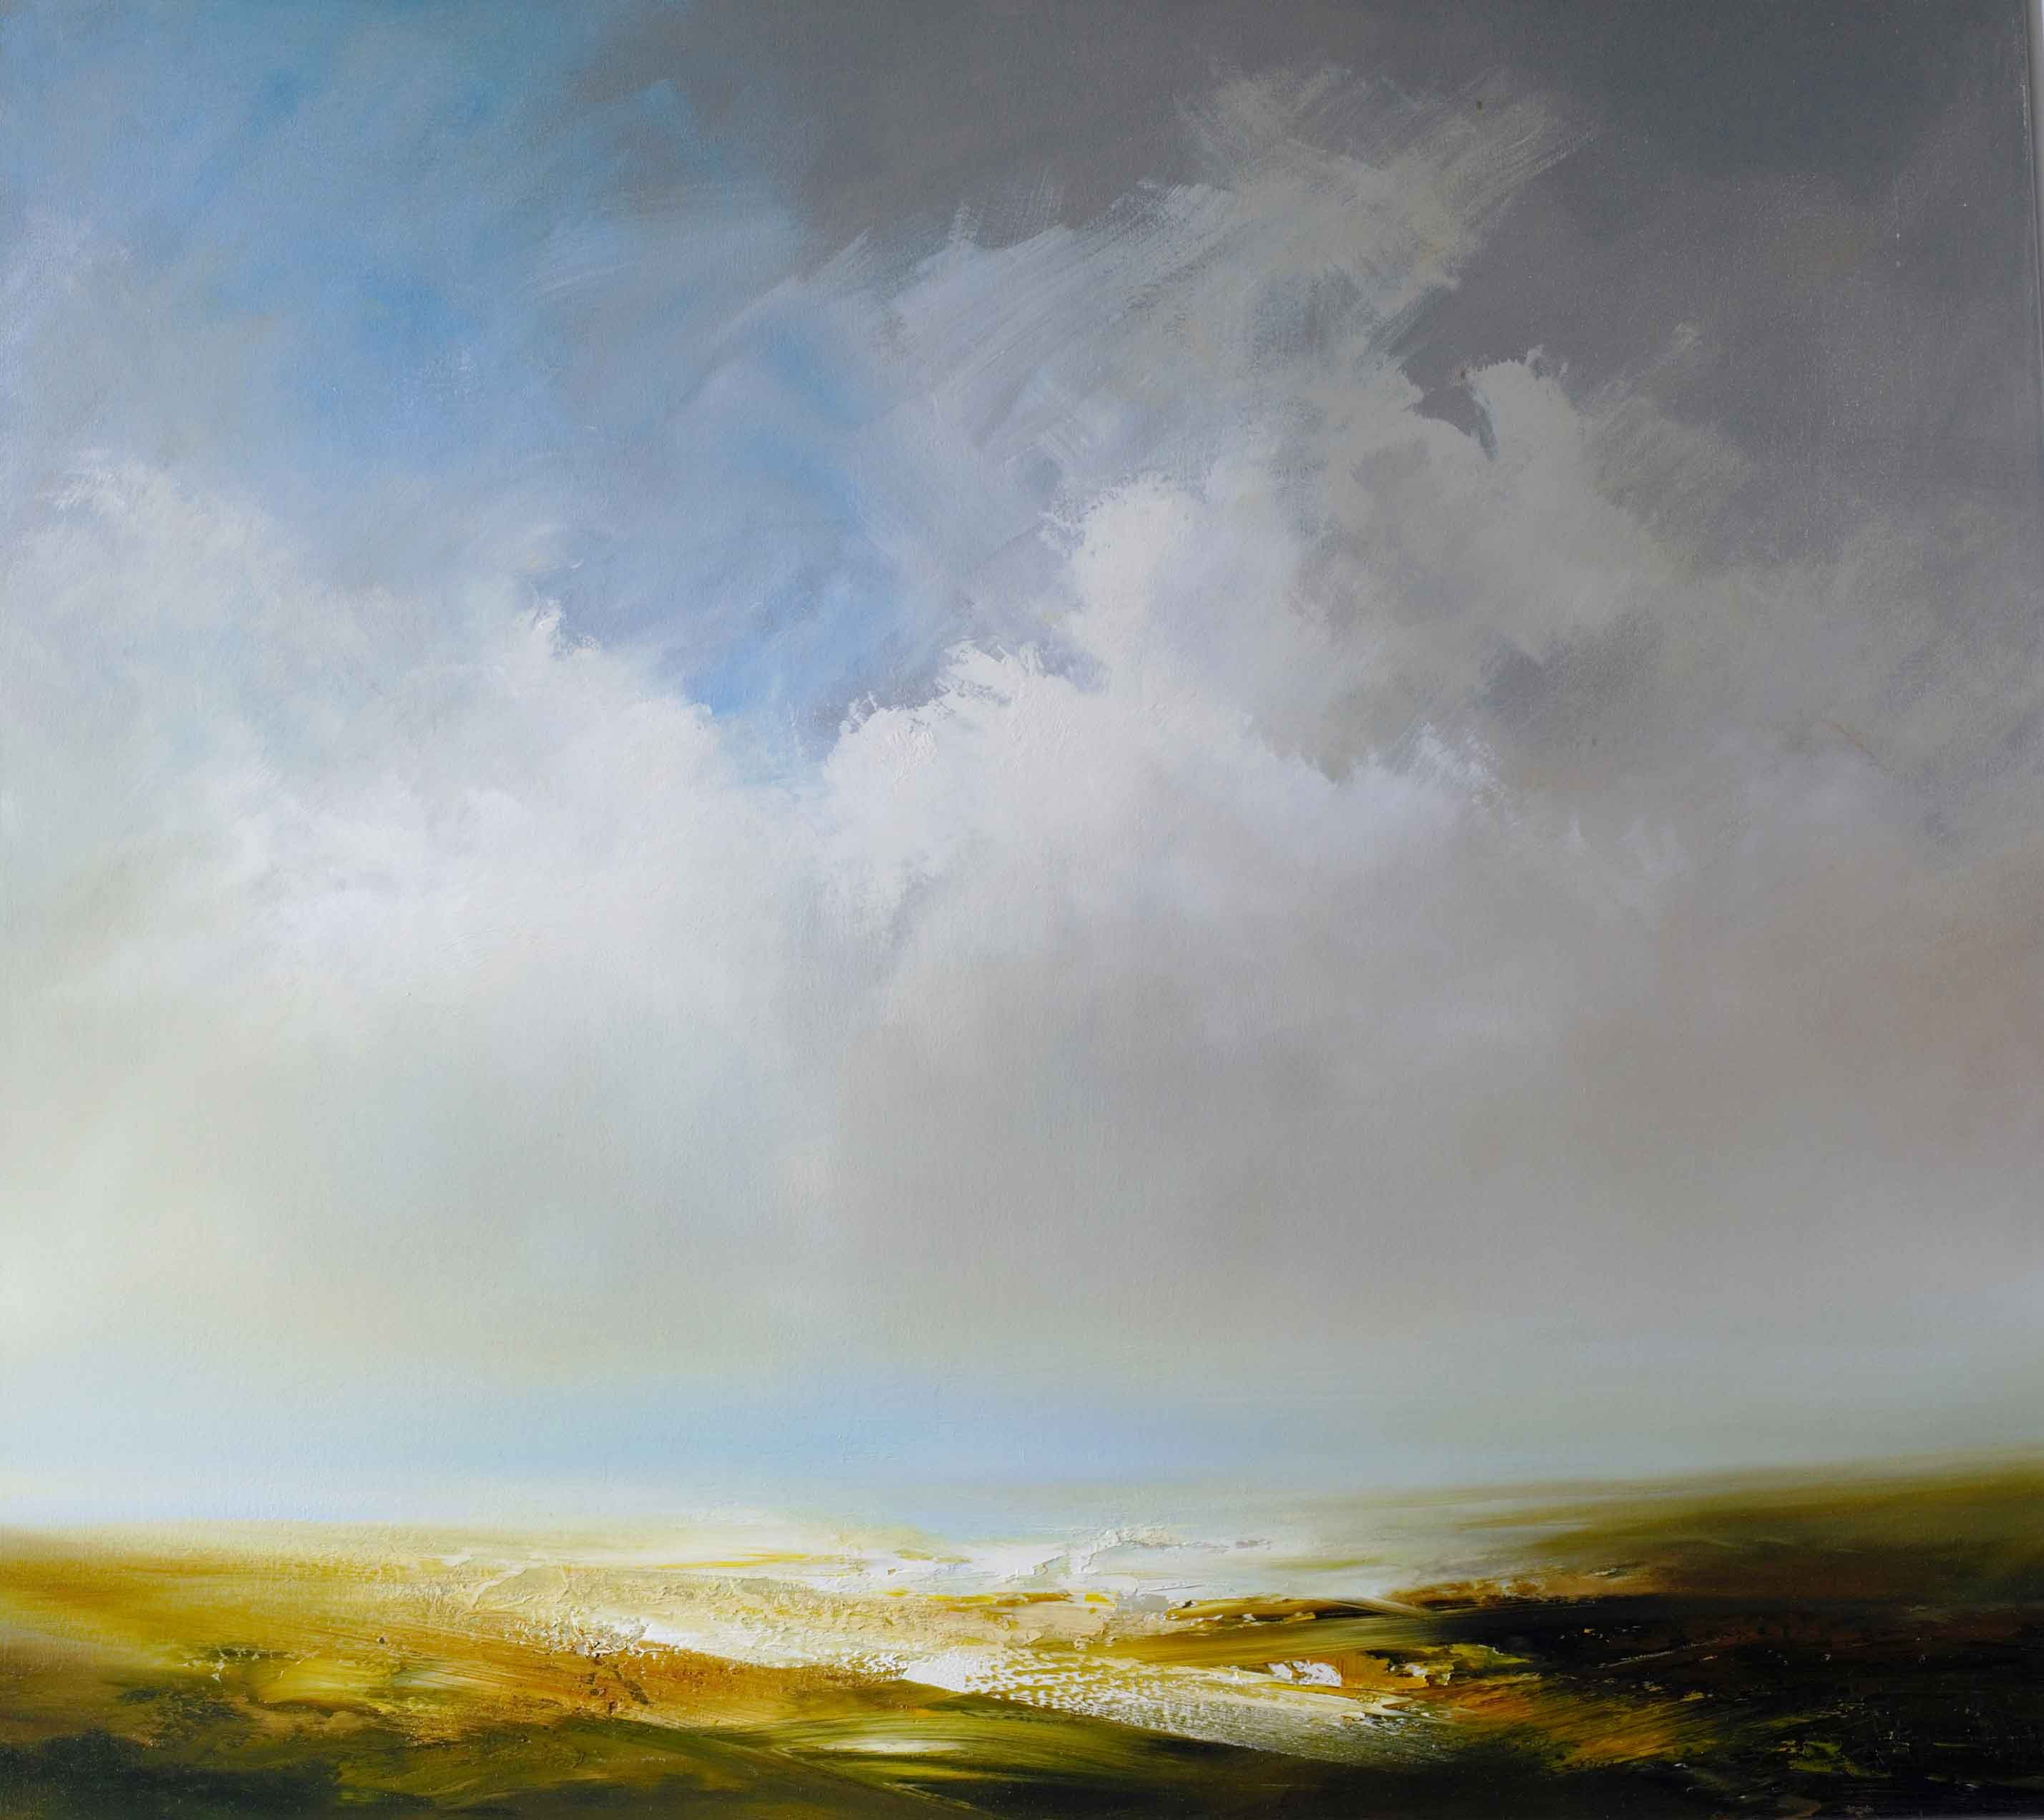 Gathering clouds over Moorland by David Taylor